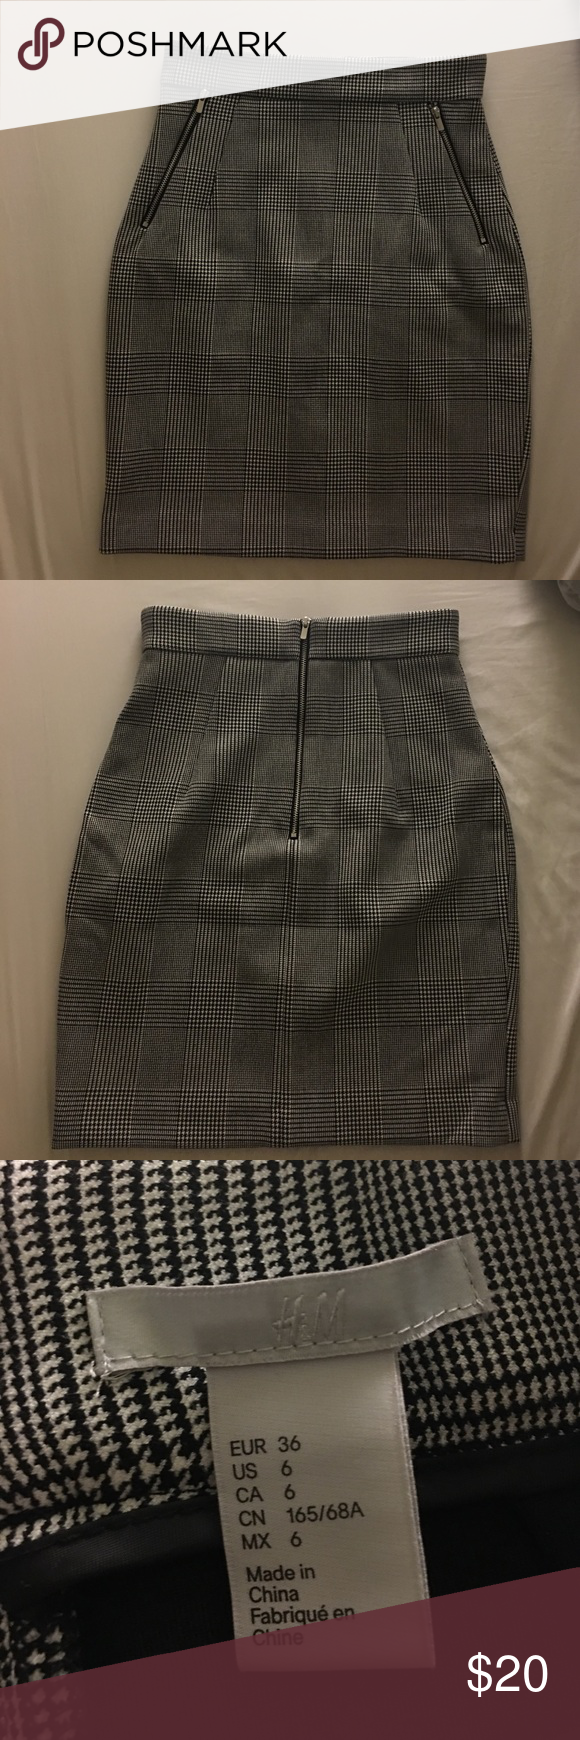 "H&M Plaid High Waisted Pencil Skirt Approximately 19.75"" length. US size 6. Silver zippers. Still in great condition. H&M Skirts Pencil"